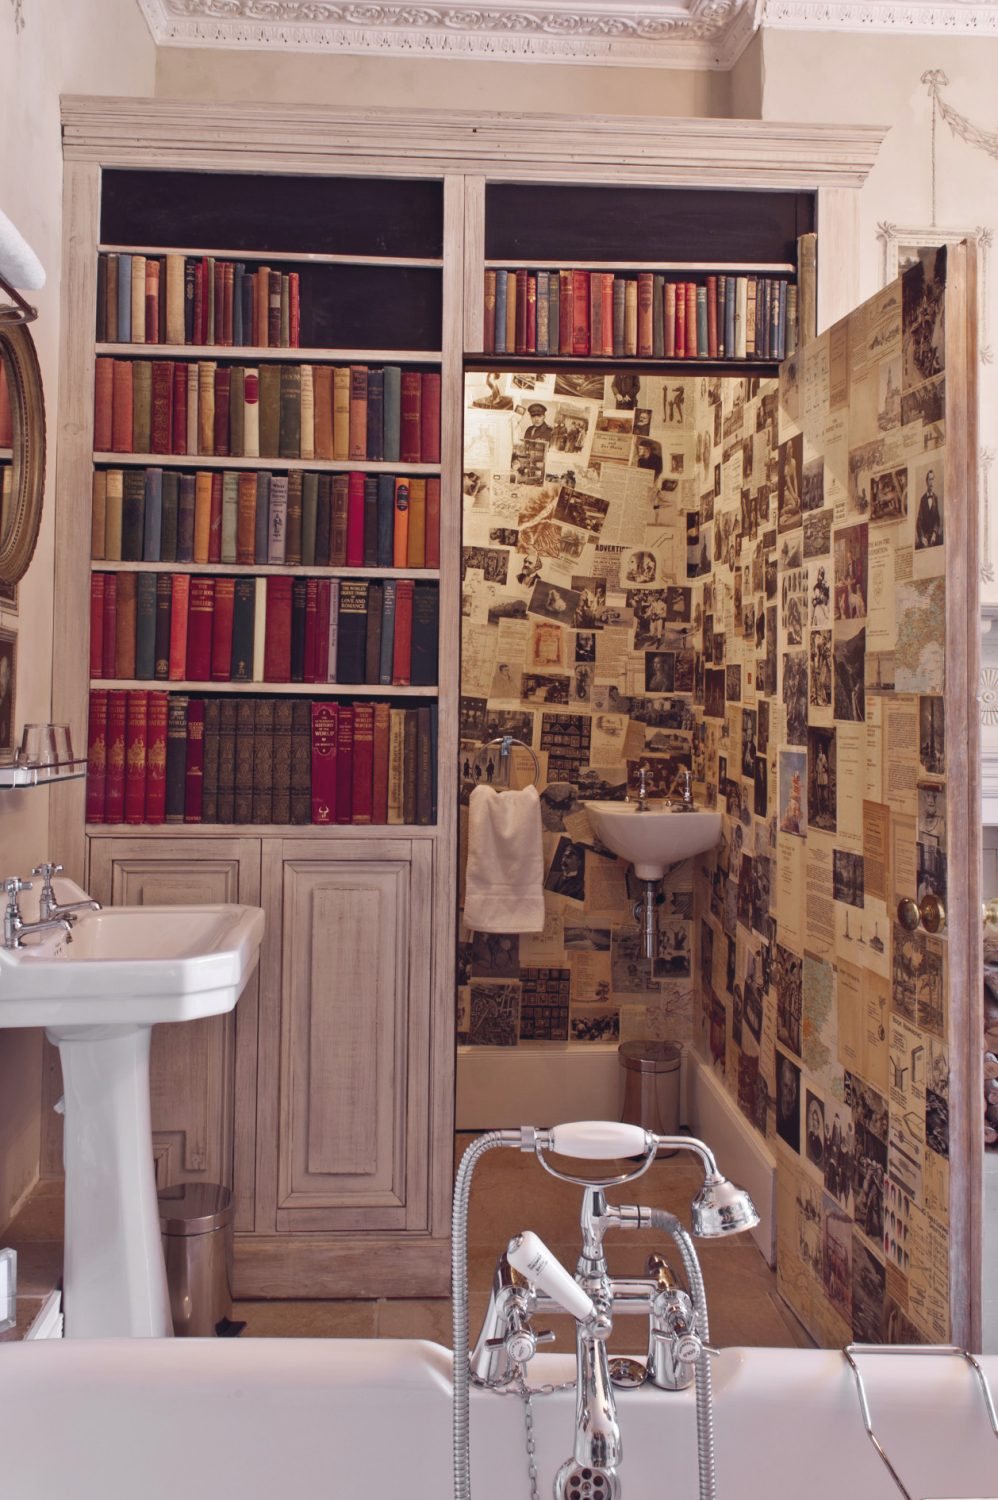 The hidden loo with walls papered with the pages of book